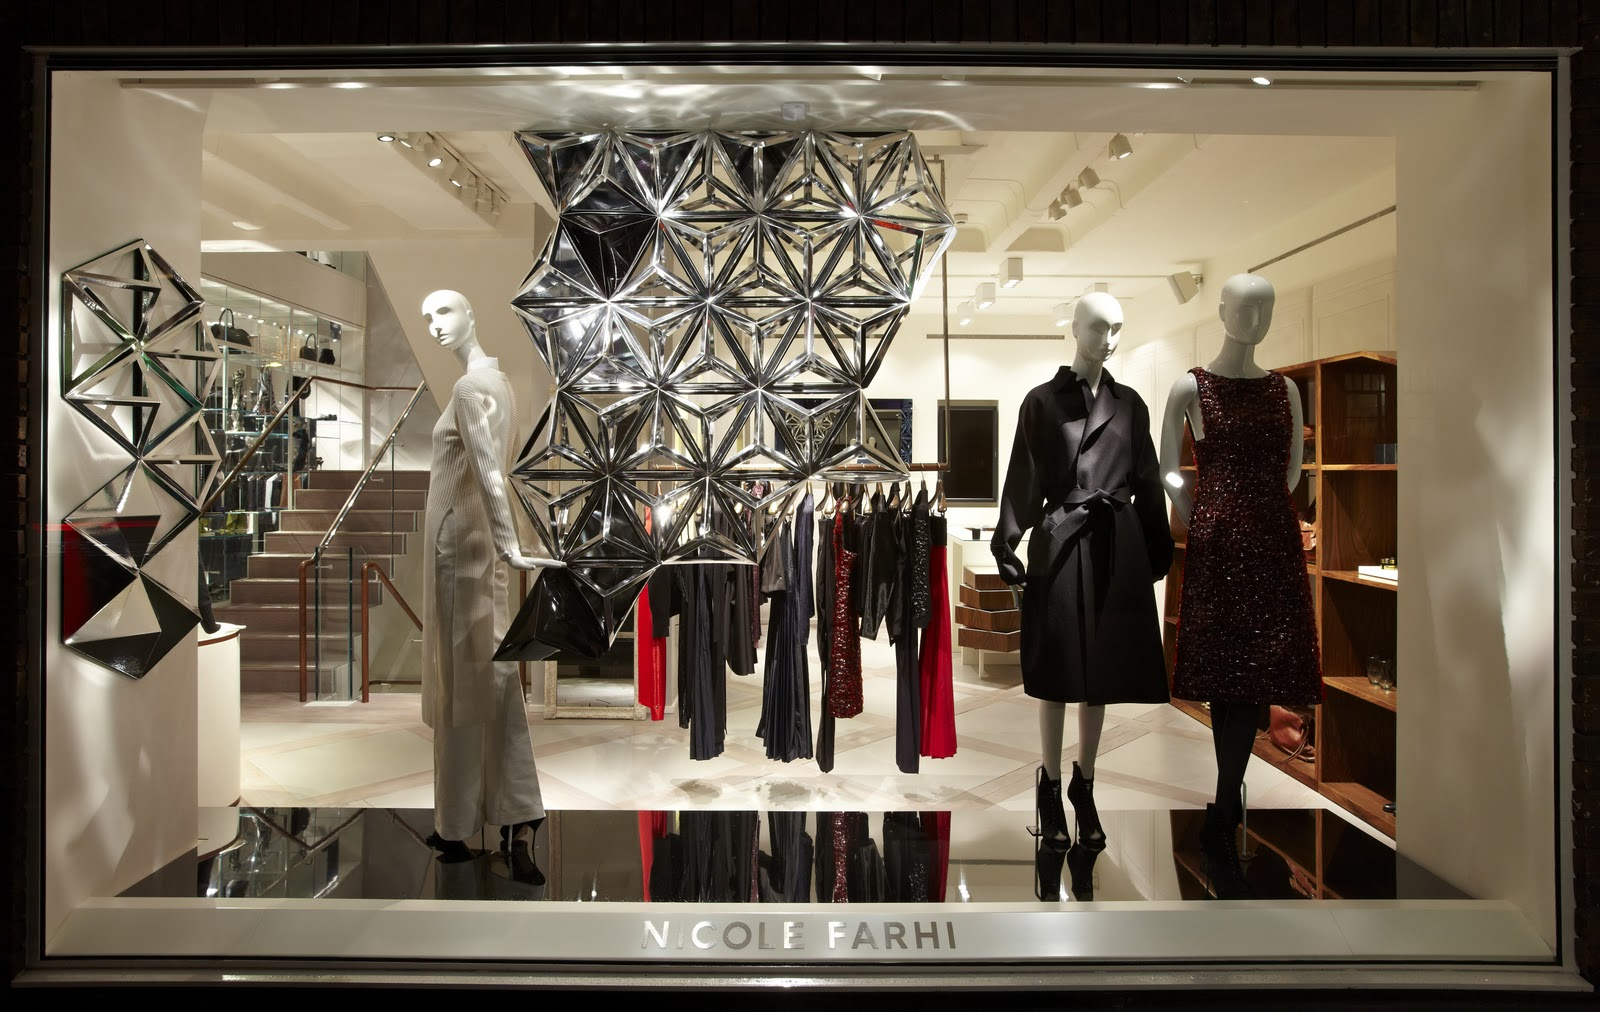 While a visual merchandiser may wear multiple hats, the general definition of visual merchandising is a marketing technique that employs the use of floor plans and three-dimensional displays to entice customers, project a positive store image, and maximize sales.